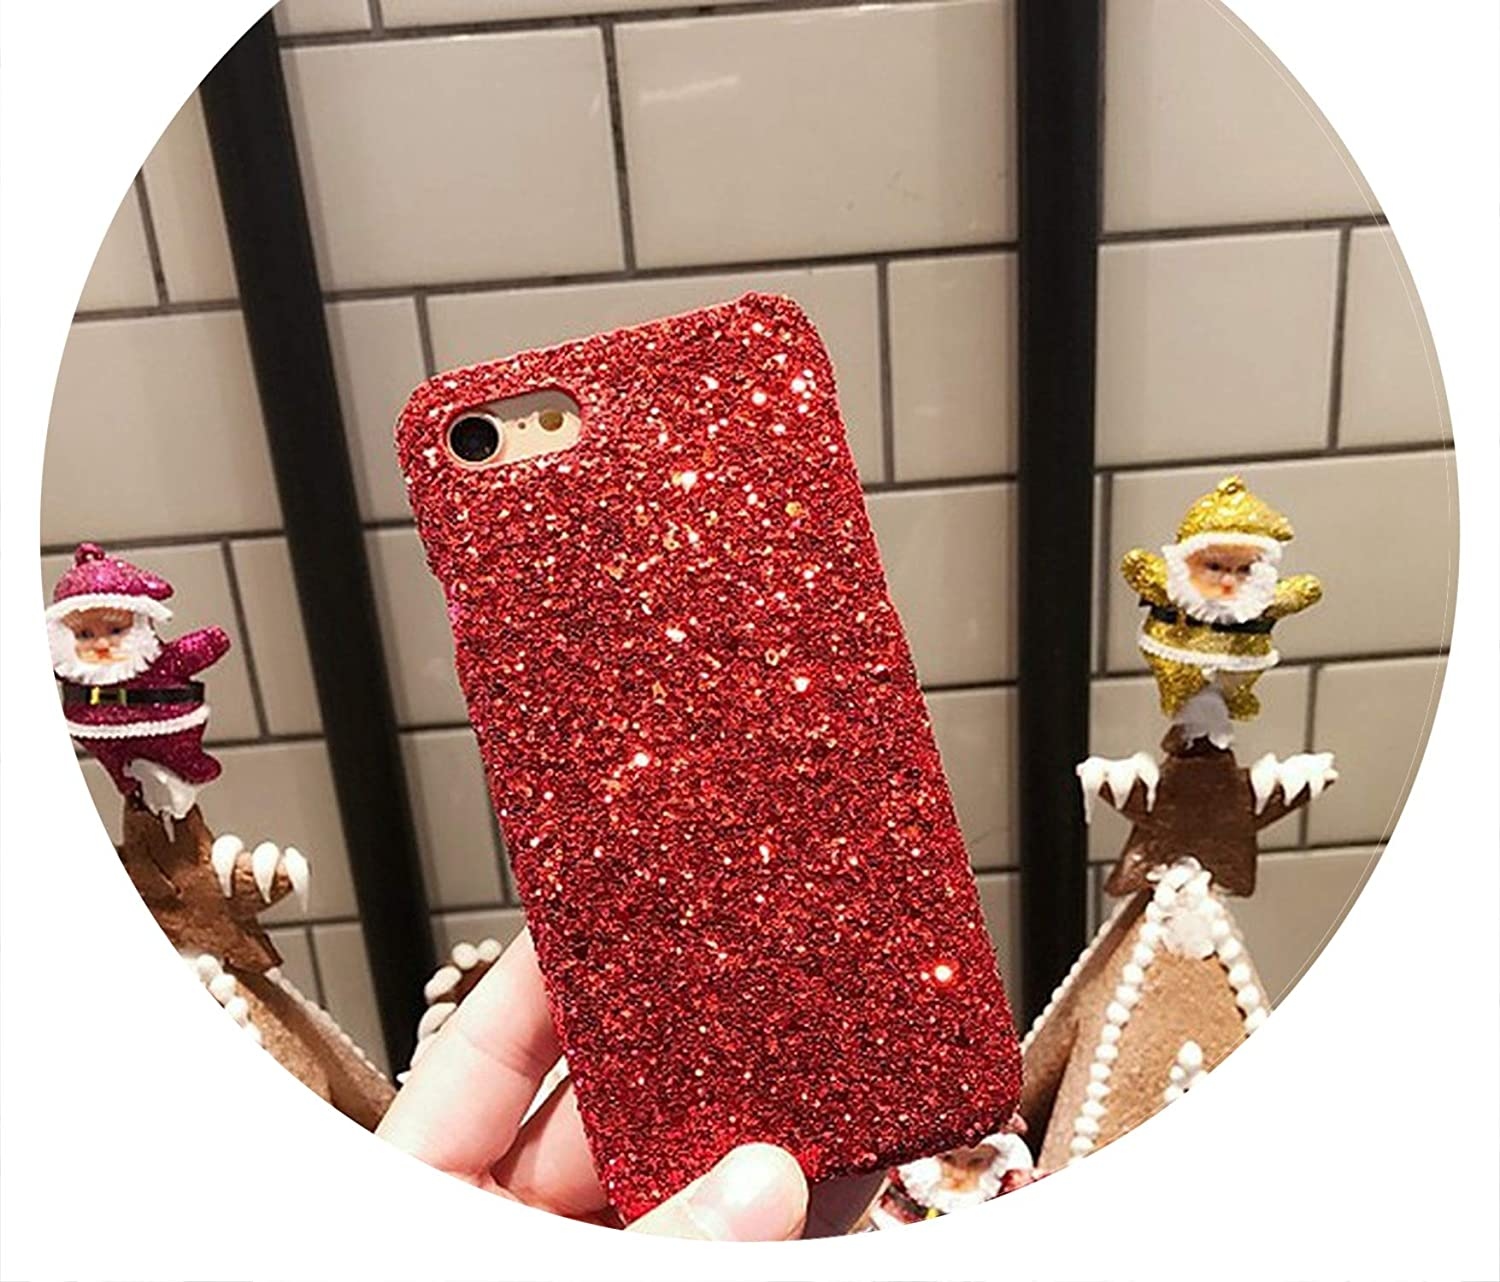 Amazon.com: Bling Glitter Cases for iPhone 7 Original Hard ...